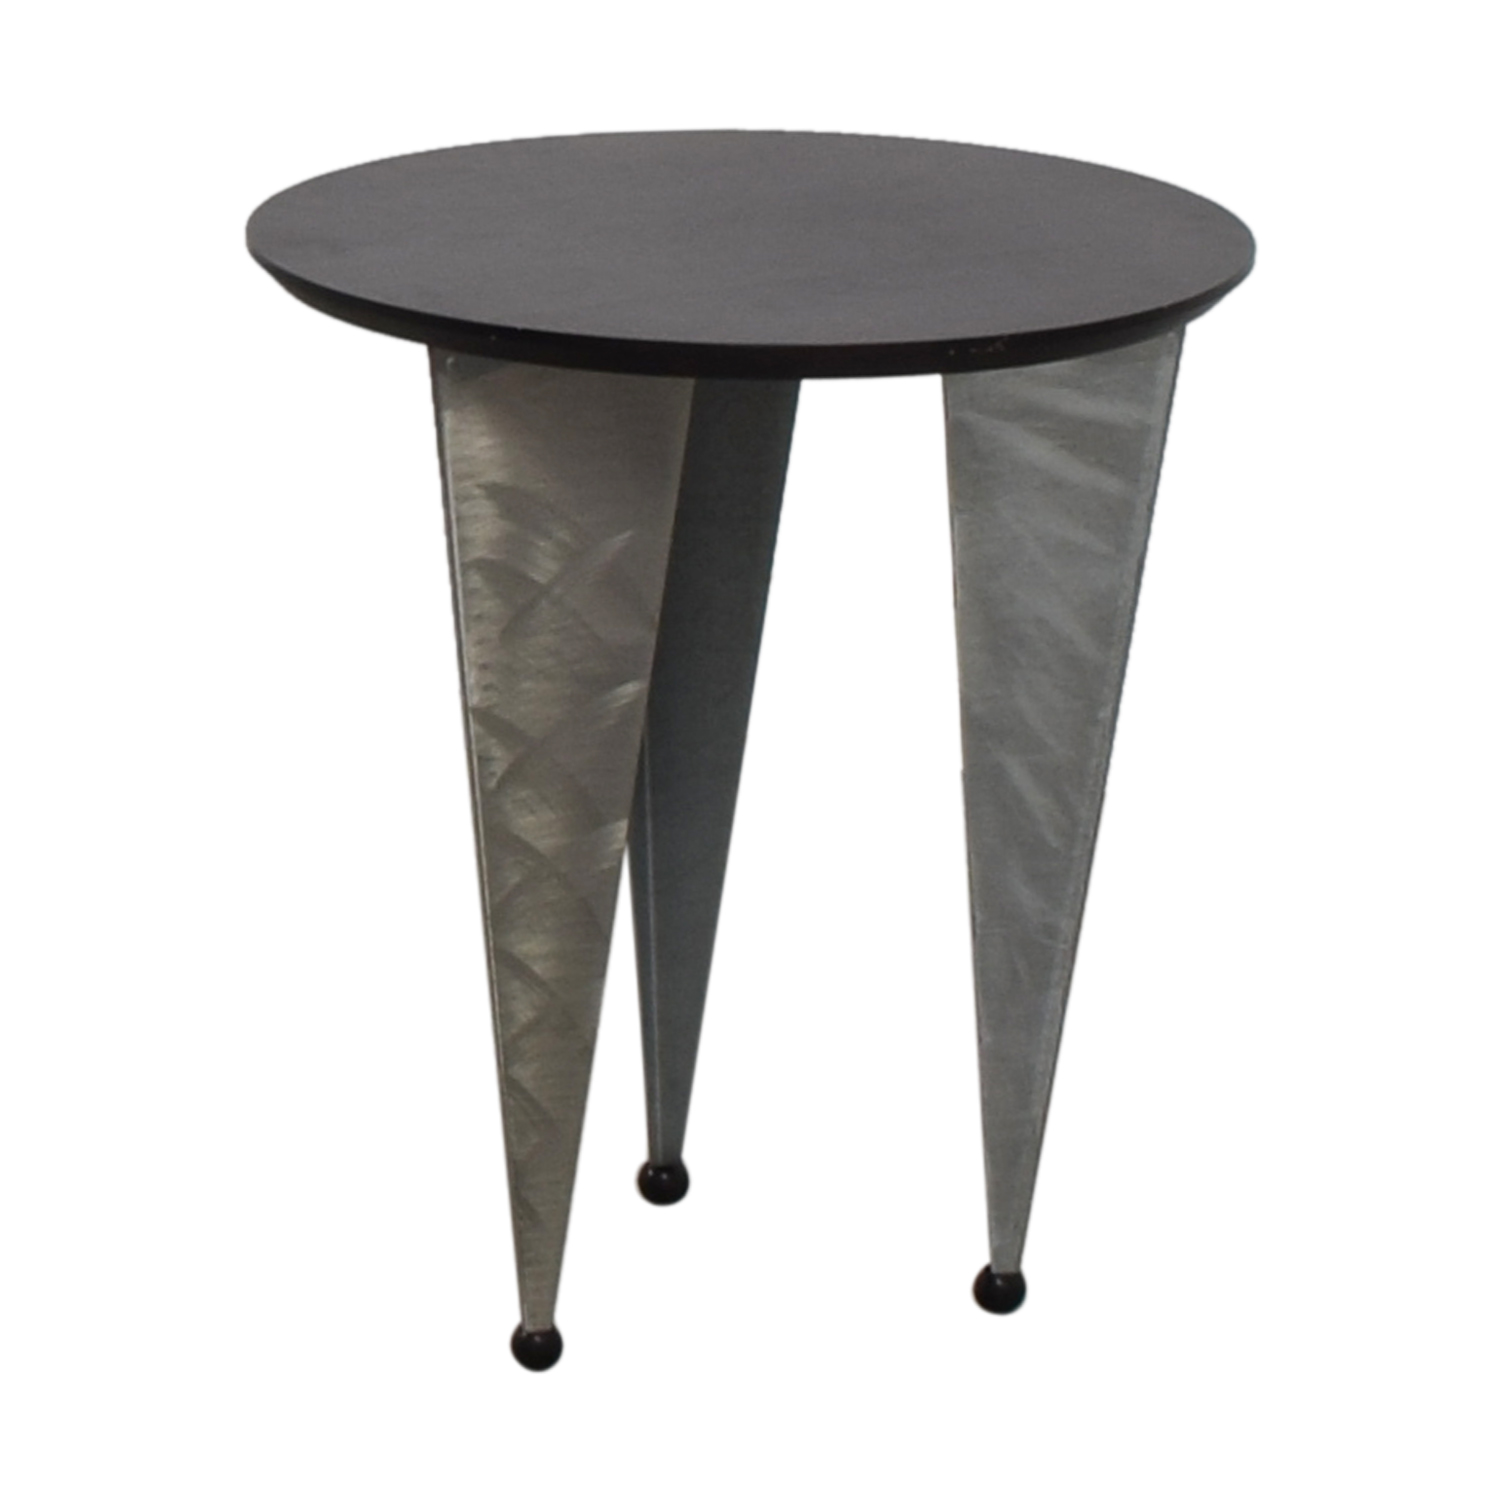 64% OFF - Art Deco Black Round Top with Metallic Legs End